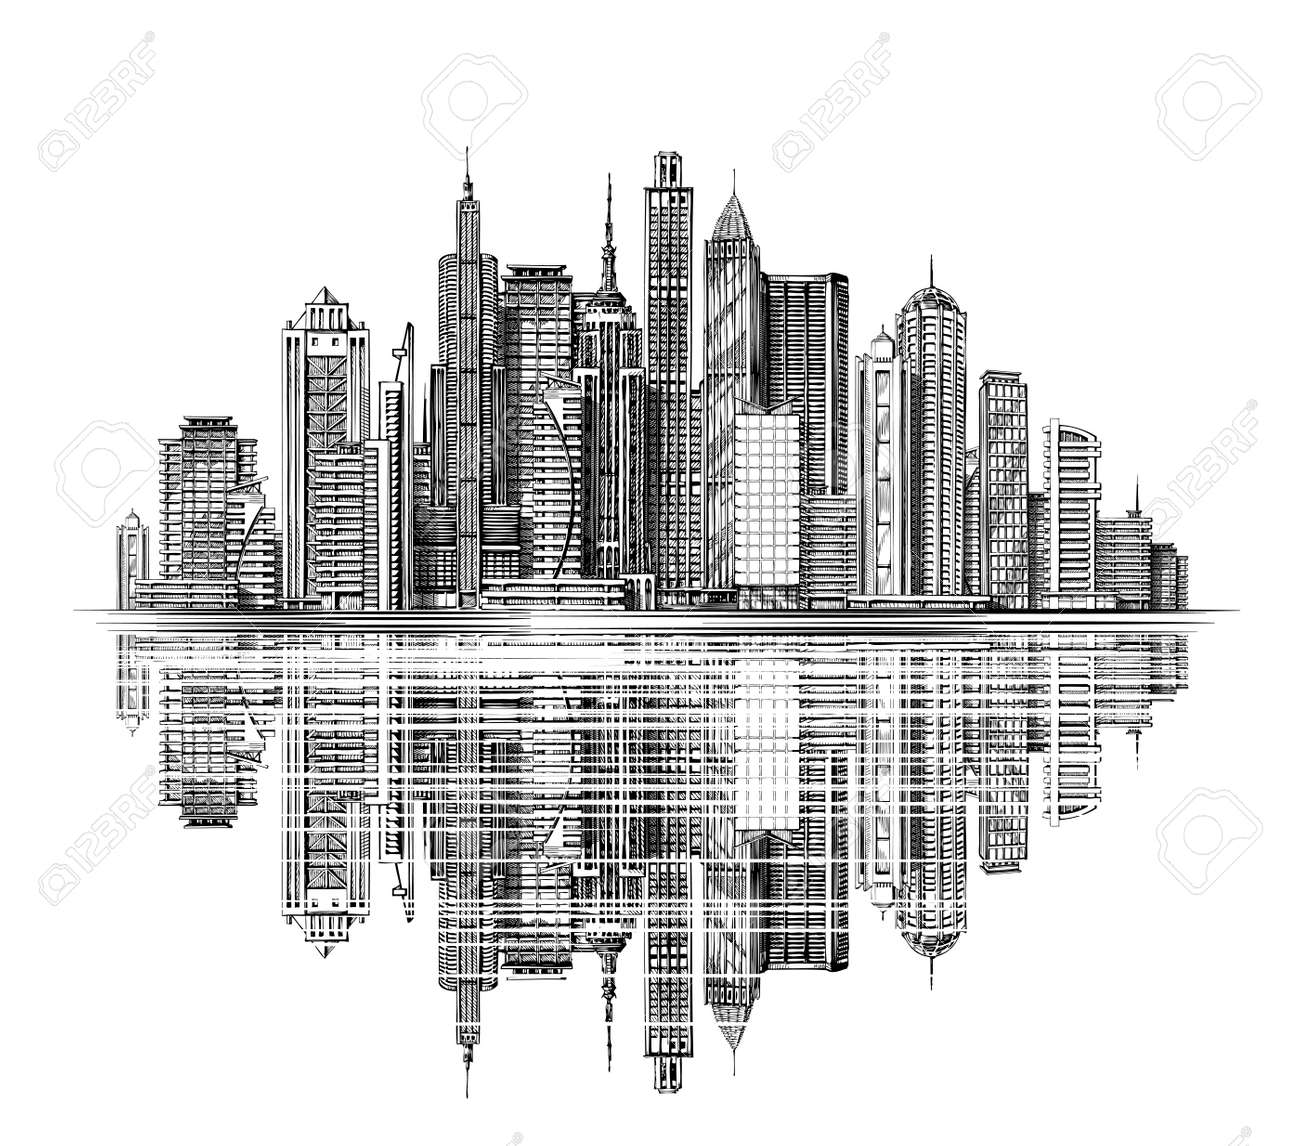 Modern City Skyline Silhouette Architecture And Buildings Hand Drawn Sketch Urban Landscape Stock Vector